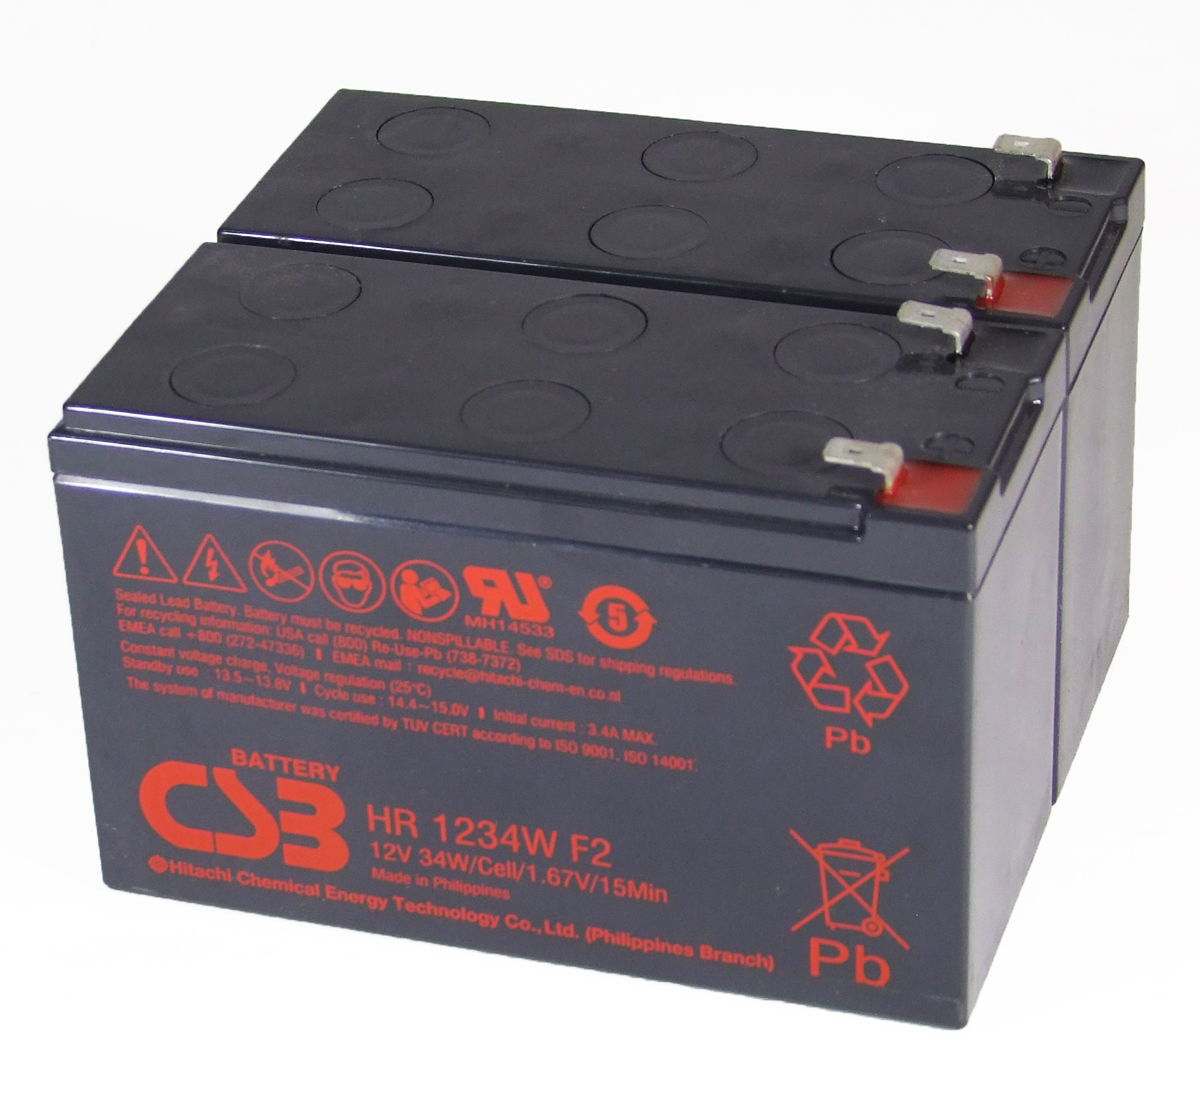 MDS109 UPS Battery Kit - Replaces APC RBC109